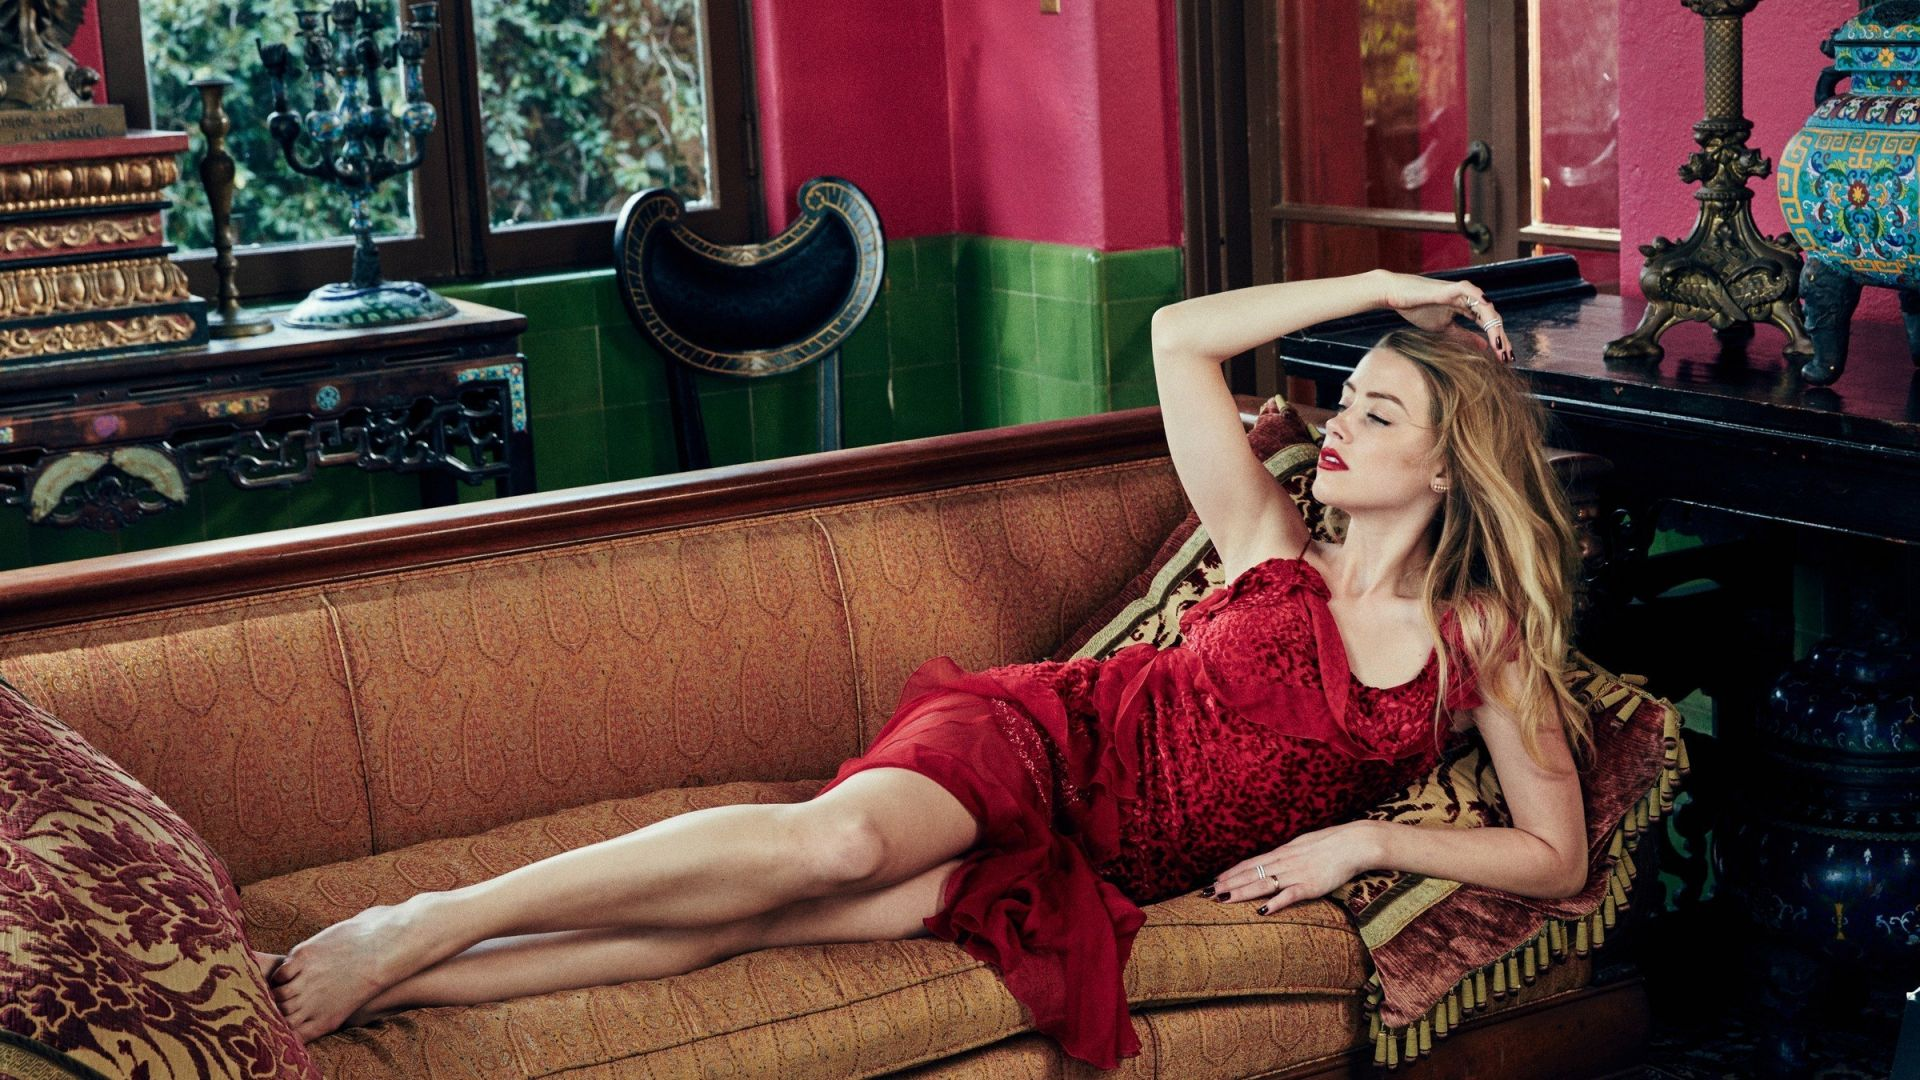 Anime Girl Wallpaper Hd Phones Desktop Wallpaper Amber Heard In Red Dress Sofa Hd Image